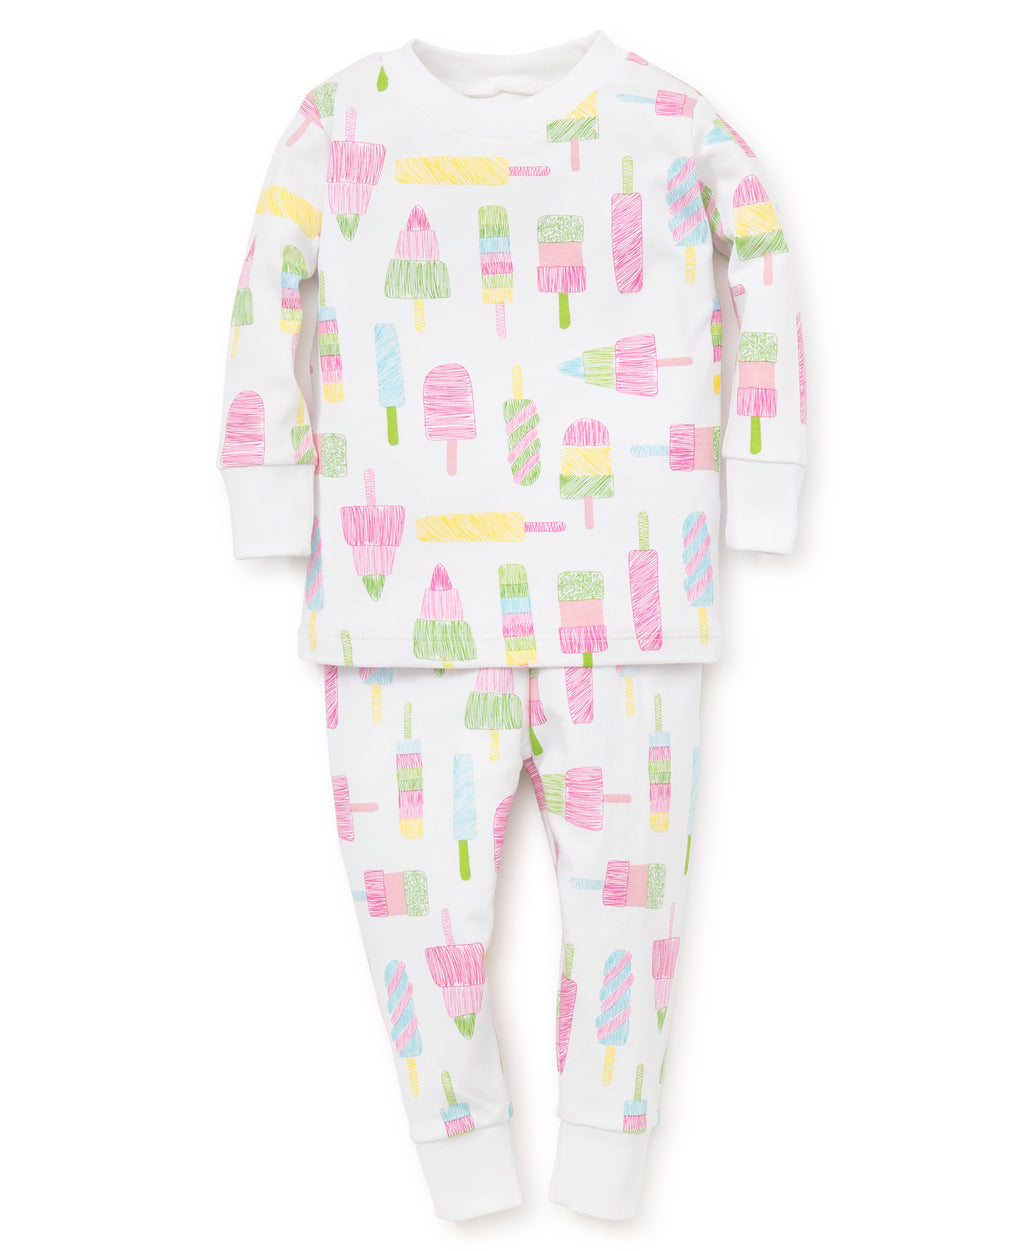 Popsicle Toddler Pajama Set